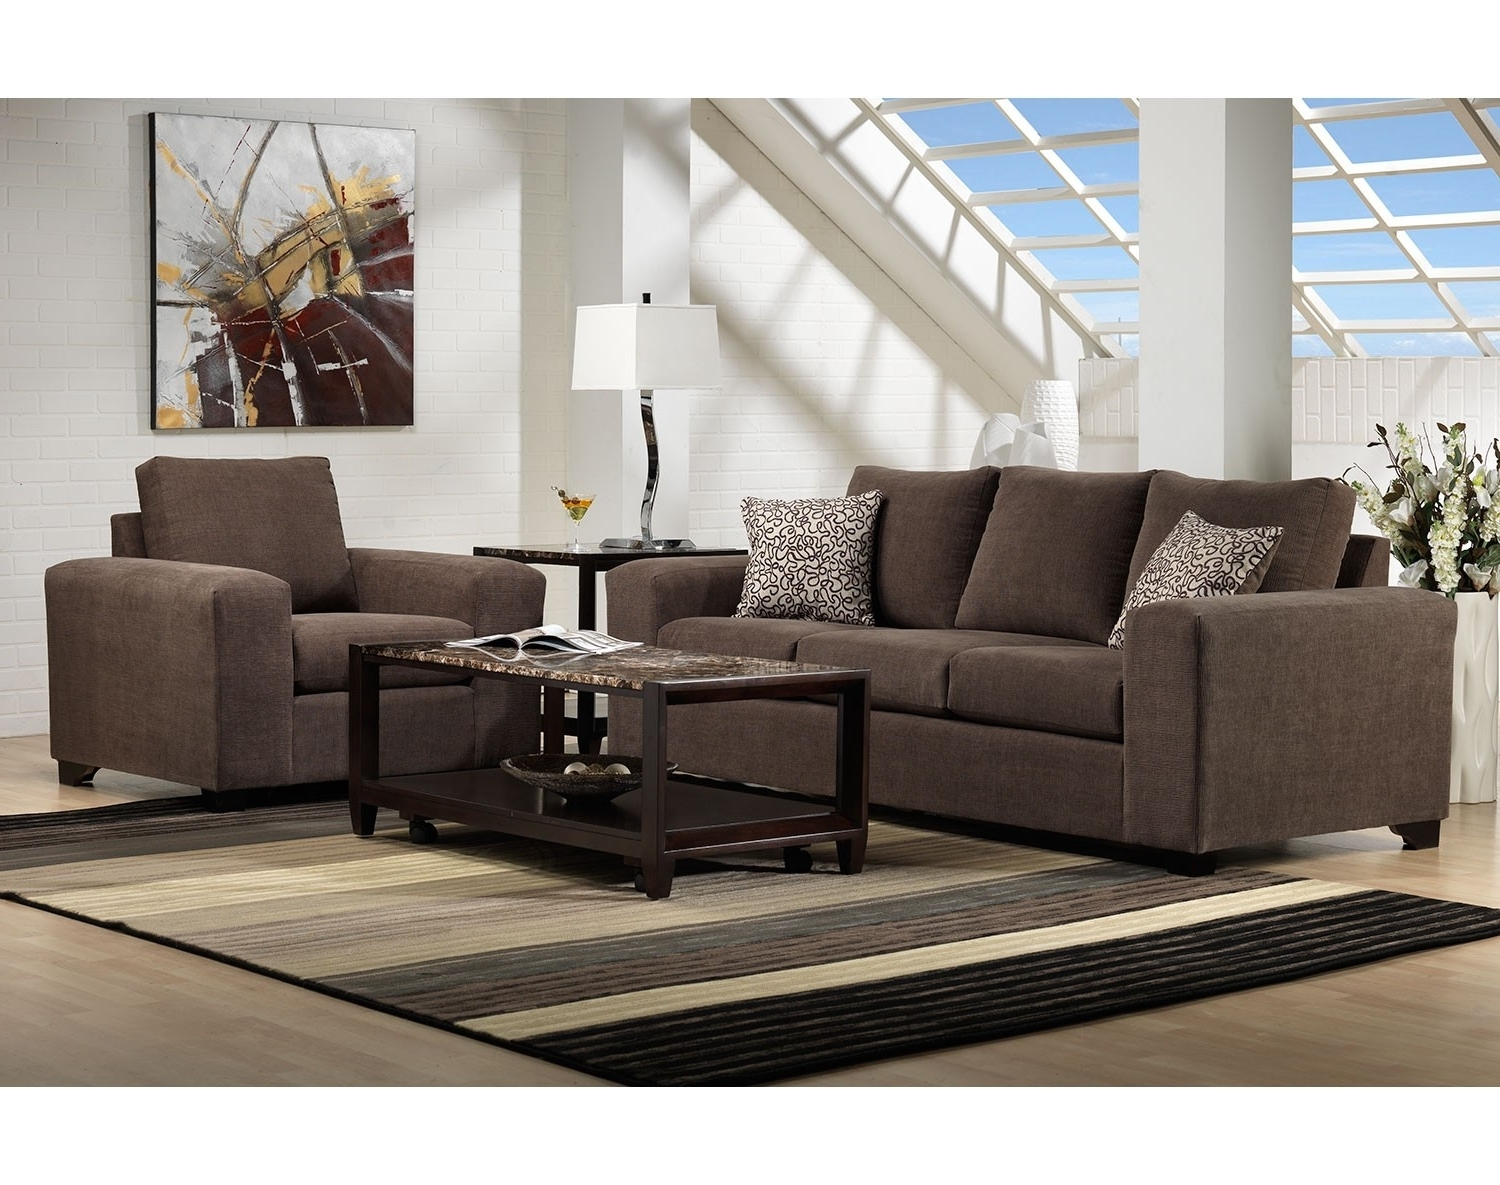 Most Popular Kijiji Edmonton Sectional Sofas With Chaise Lounge Leons Cheap Sofa Edmonton Leons Sectionals Kijiji (View 10 of 20)